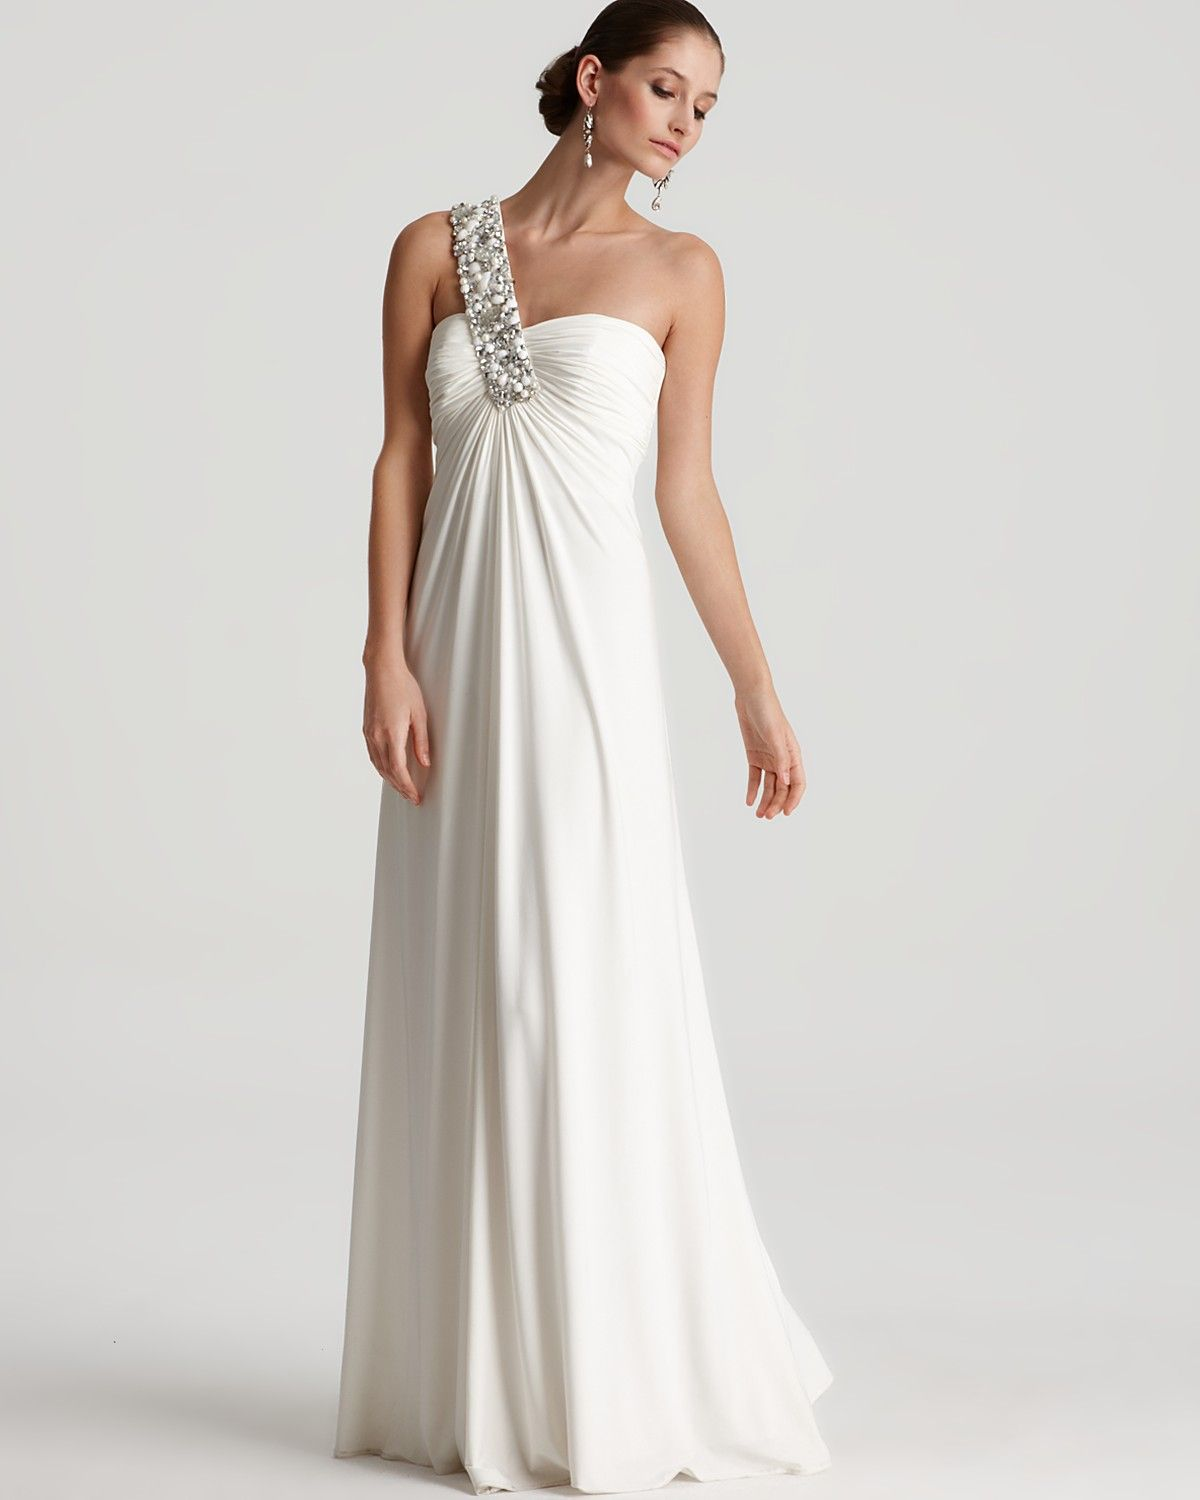 Mignon gown embellished one shoulder bloomingdaleus kristenus